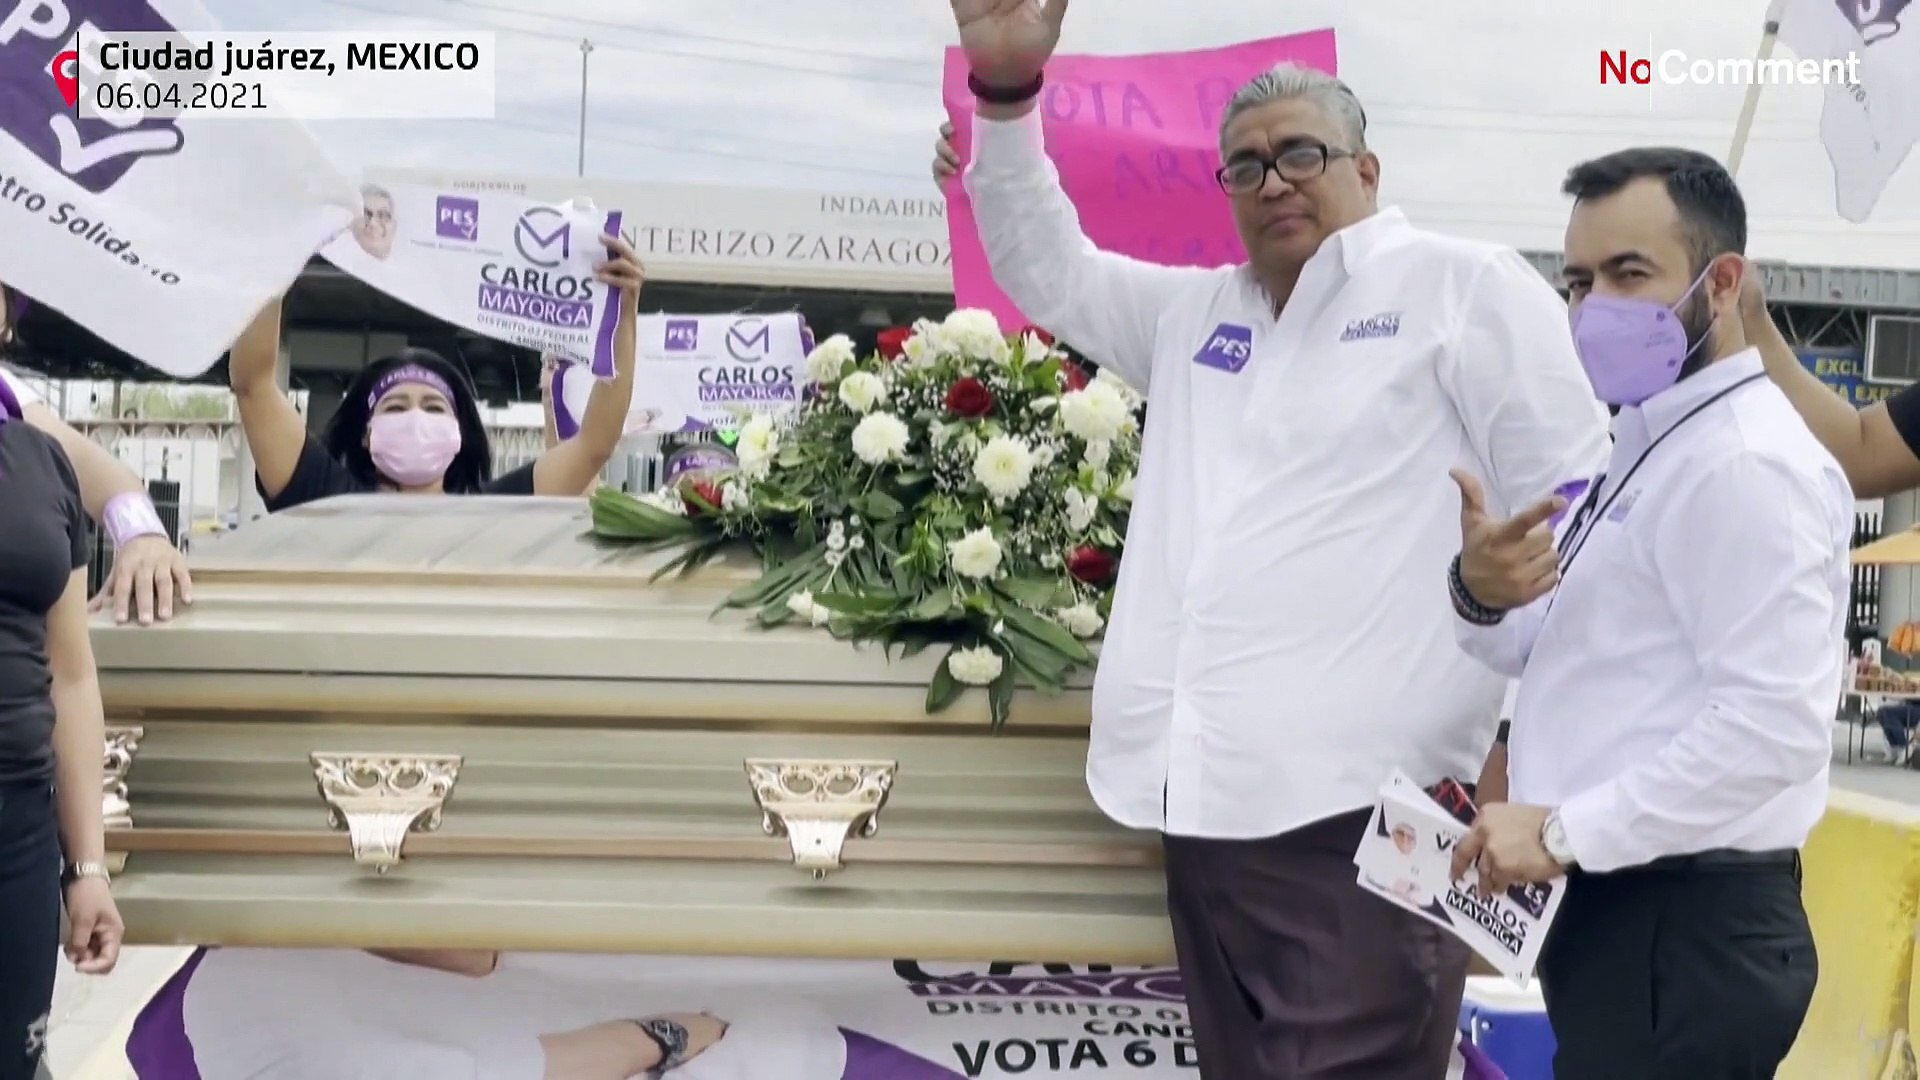 Candidate kicks off campaign in northern Mexico inside a coffin - video  Dailymotion